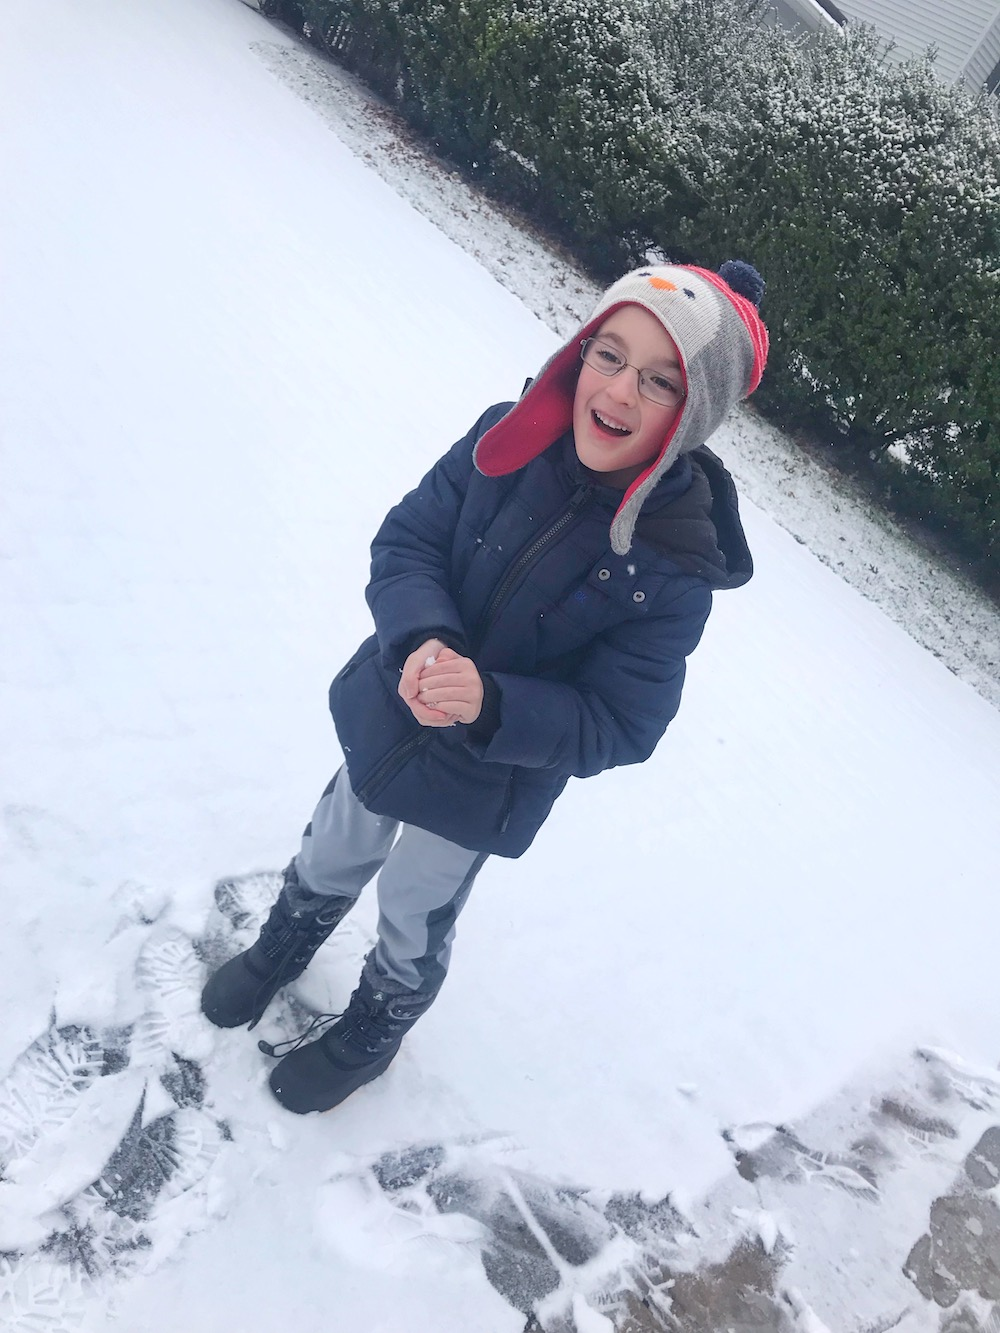 Kamik boots - boy laughing in snow #FreeYourPlay